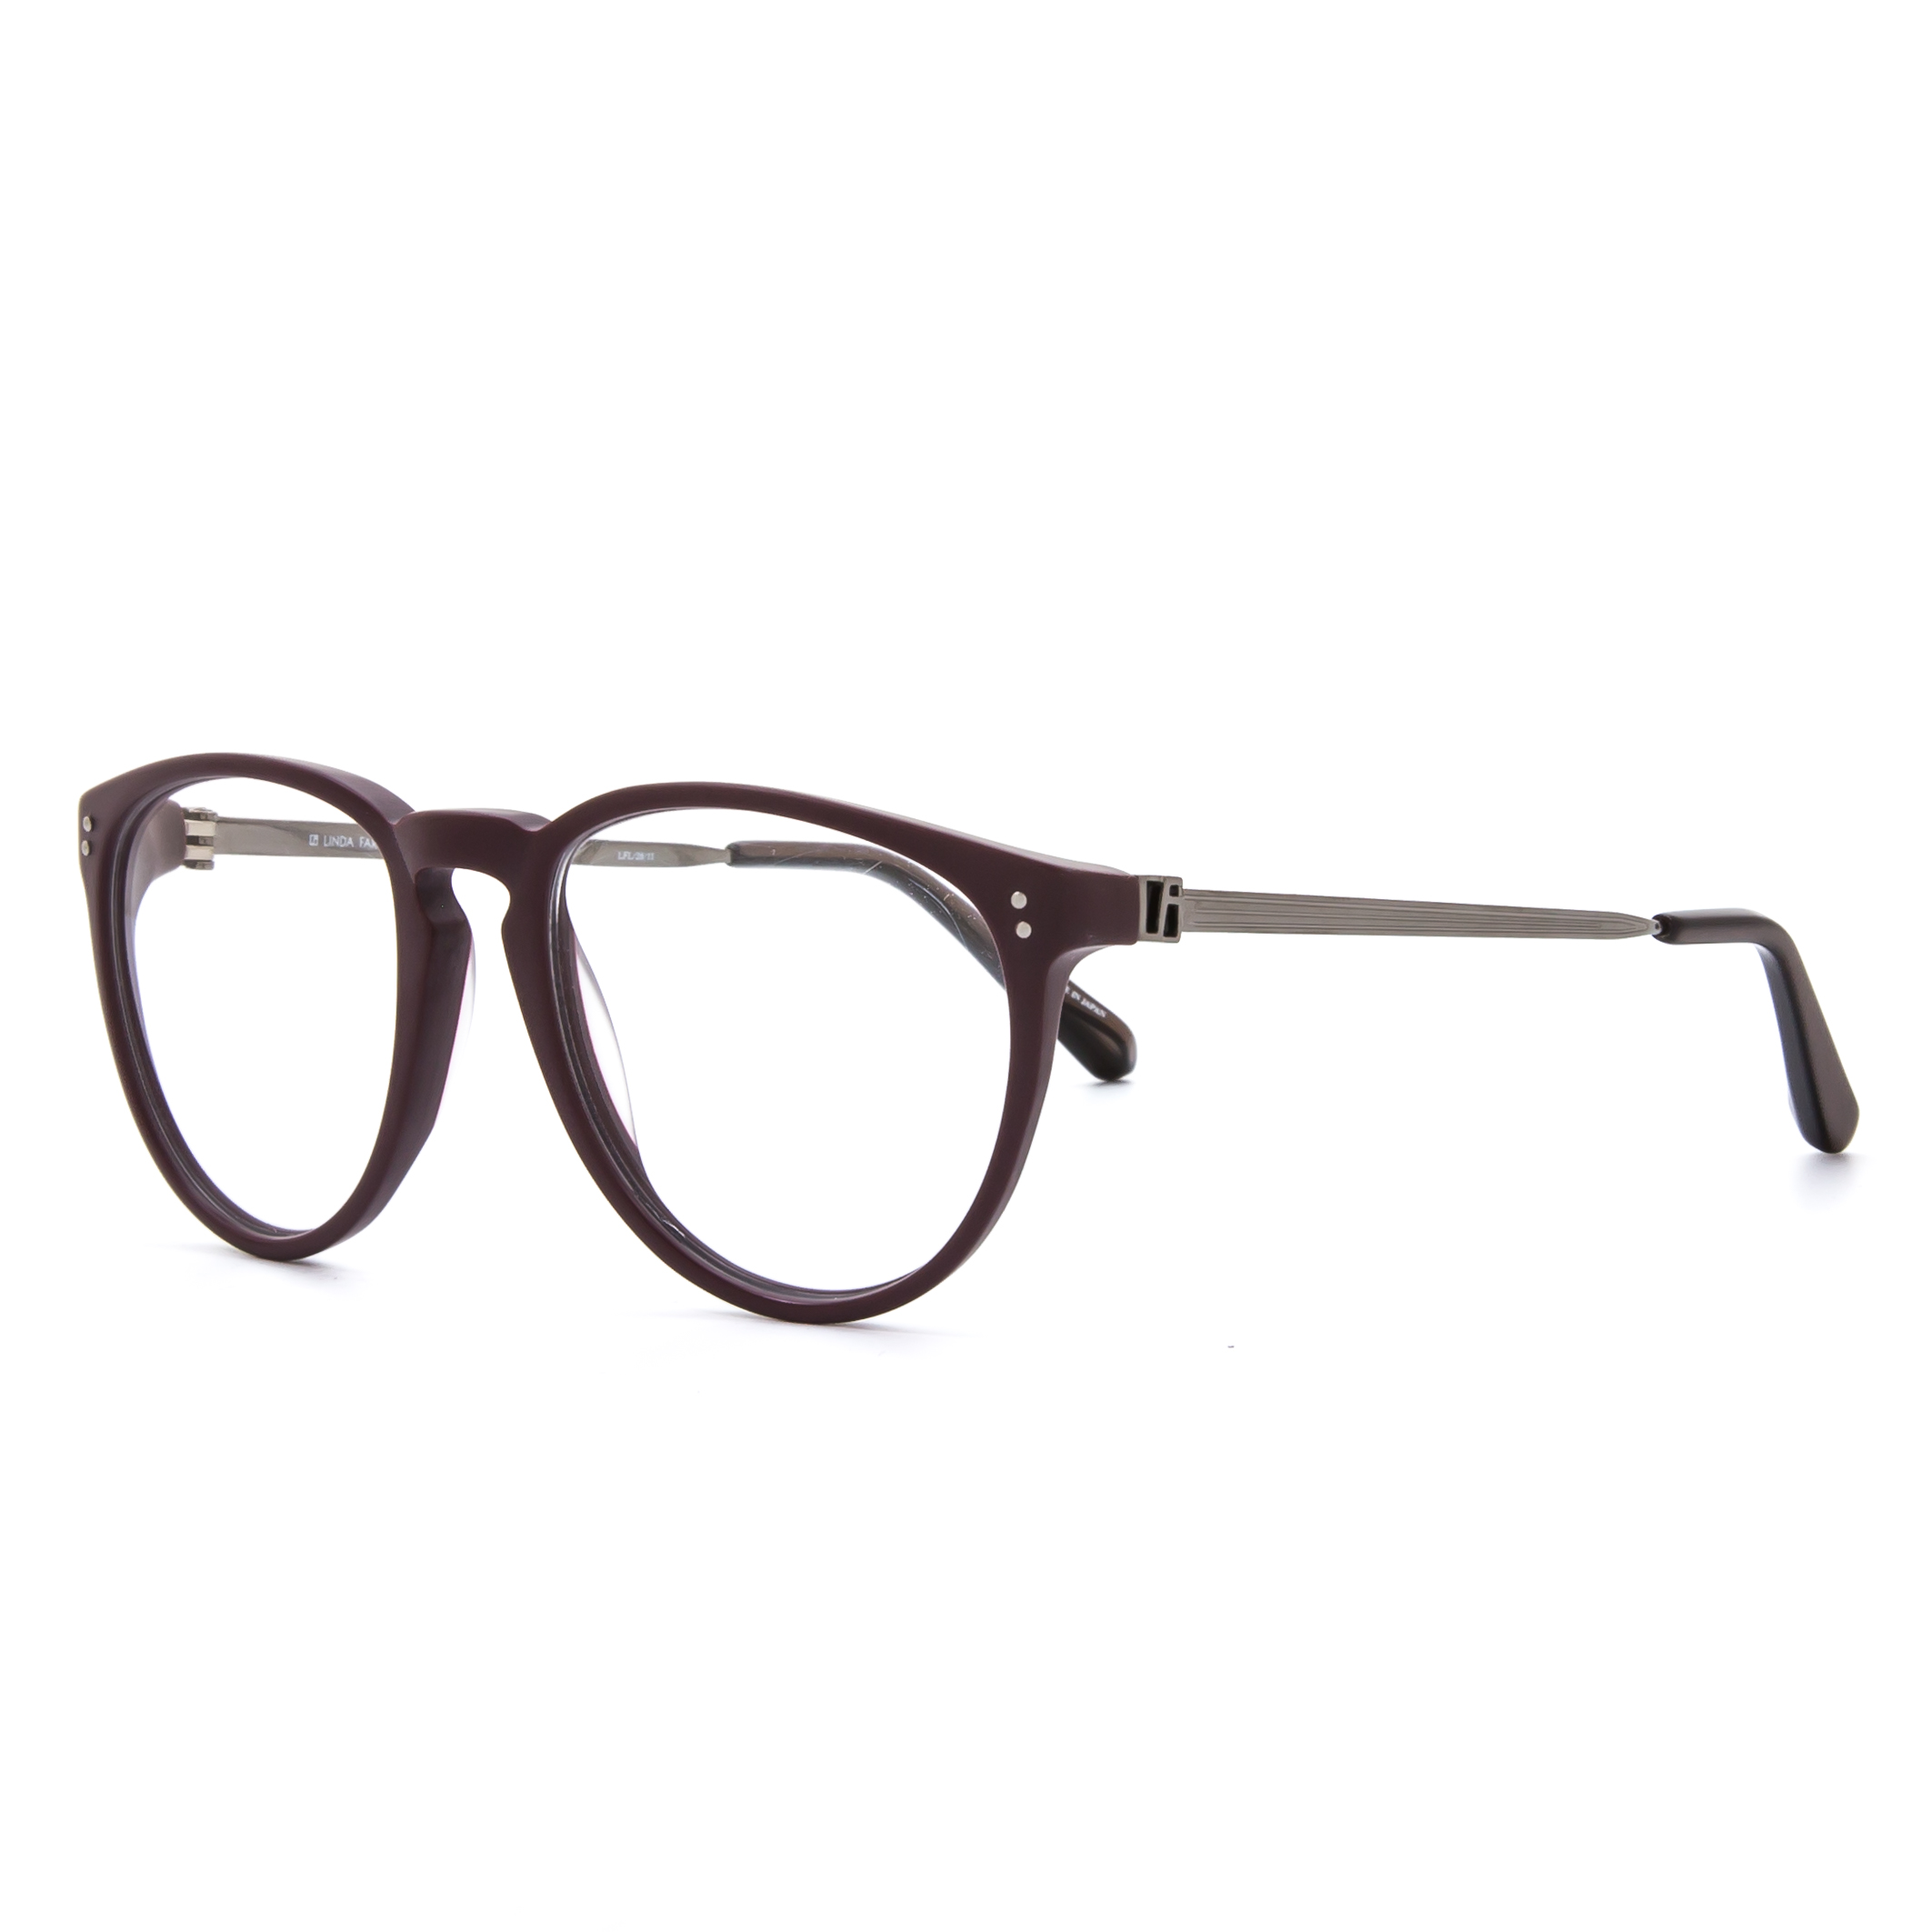 Eyeglass Frames For Narrow Bridge : Linda Farrow Luxe LFL 26 Eyeglasses C11 Purple Grey Frame ...